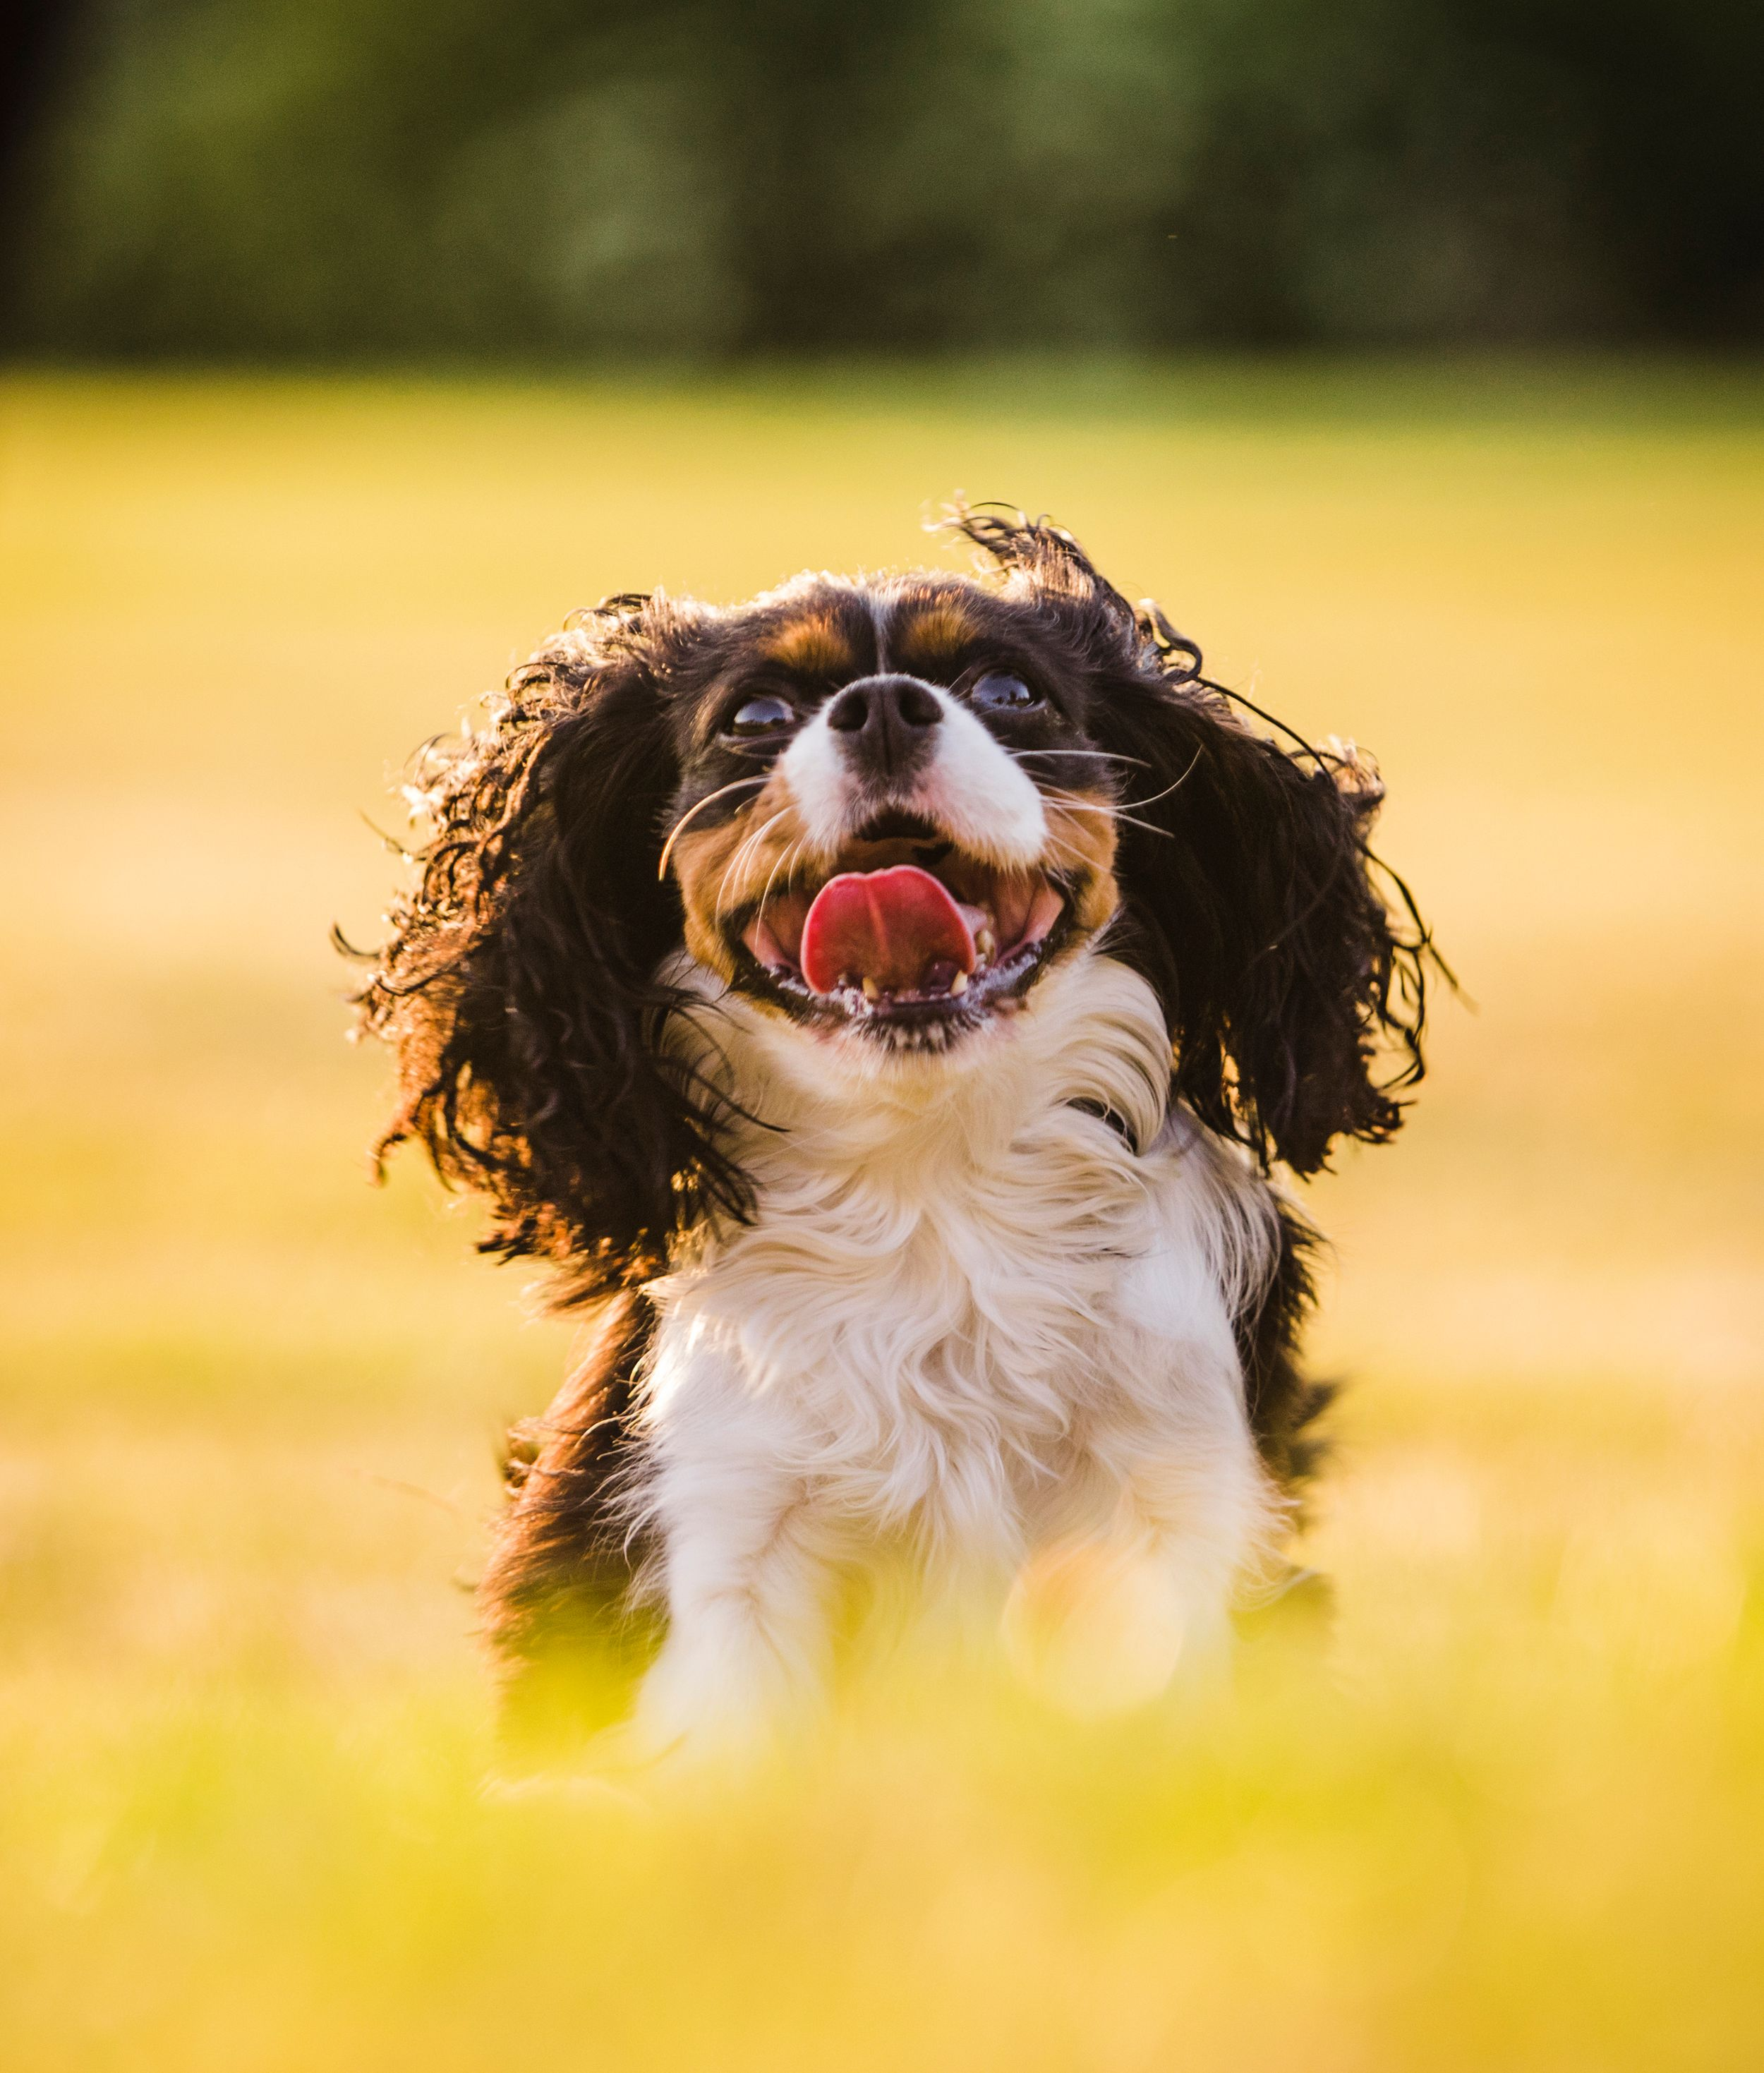 Action shot dog photographer dundee Cavalier king charles spaniel scotland